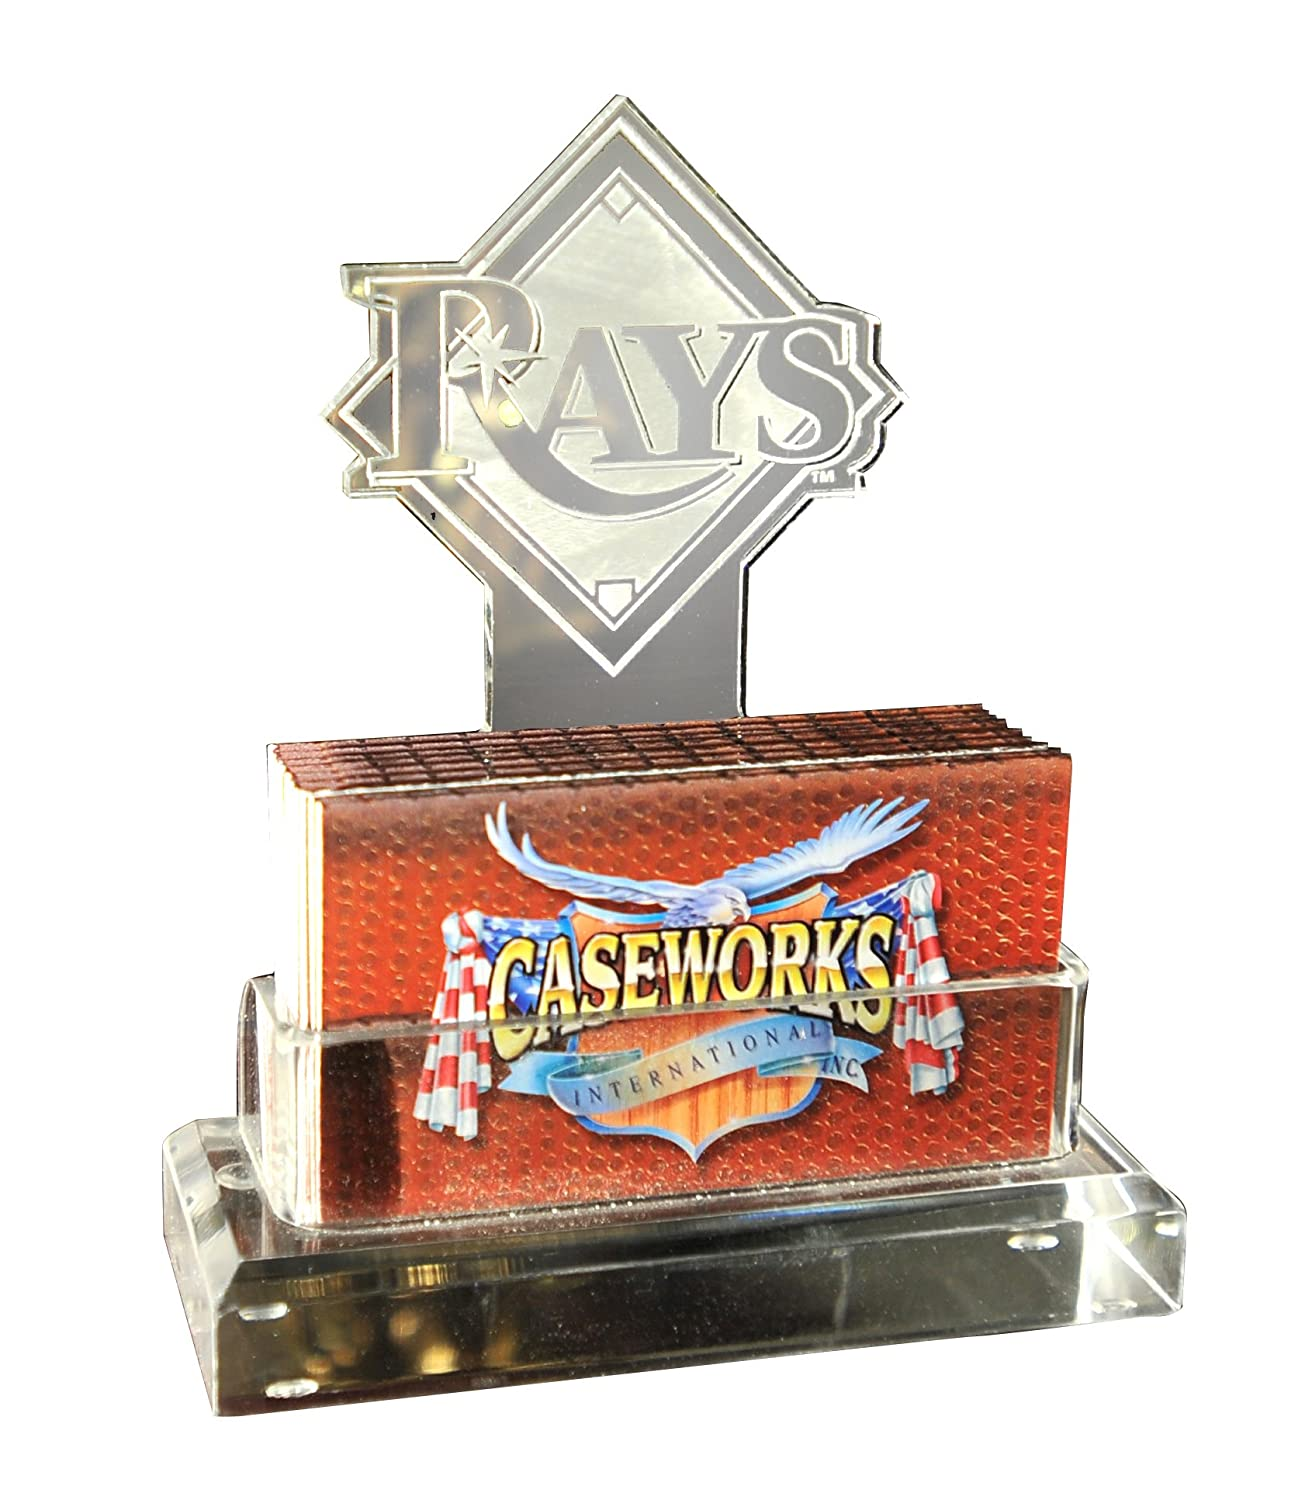 Amazon mlb tampa bay rays business card holder in gift box amazon mlb tampa bay rays business card holder in gift box sports related fan shop sports outdoors reheart Images